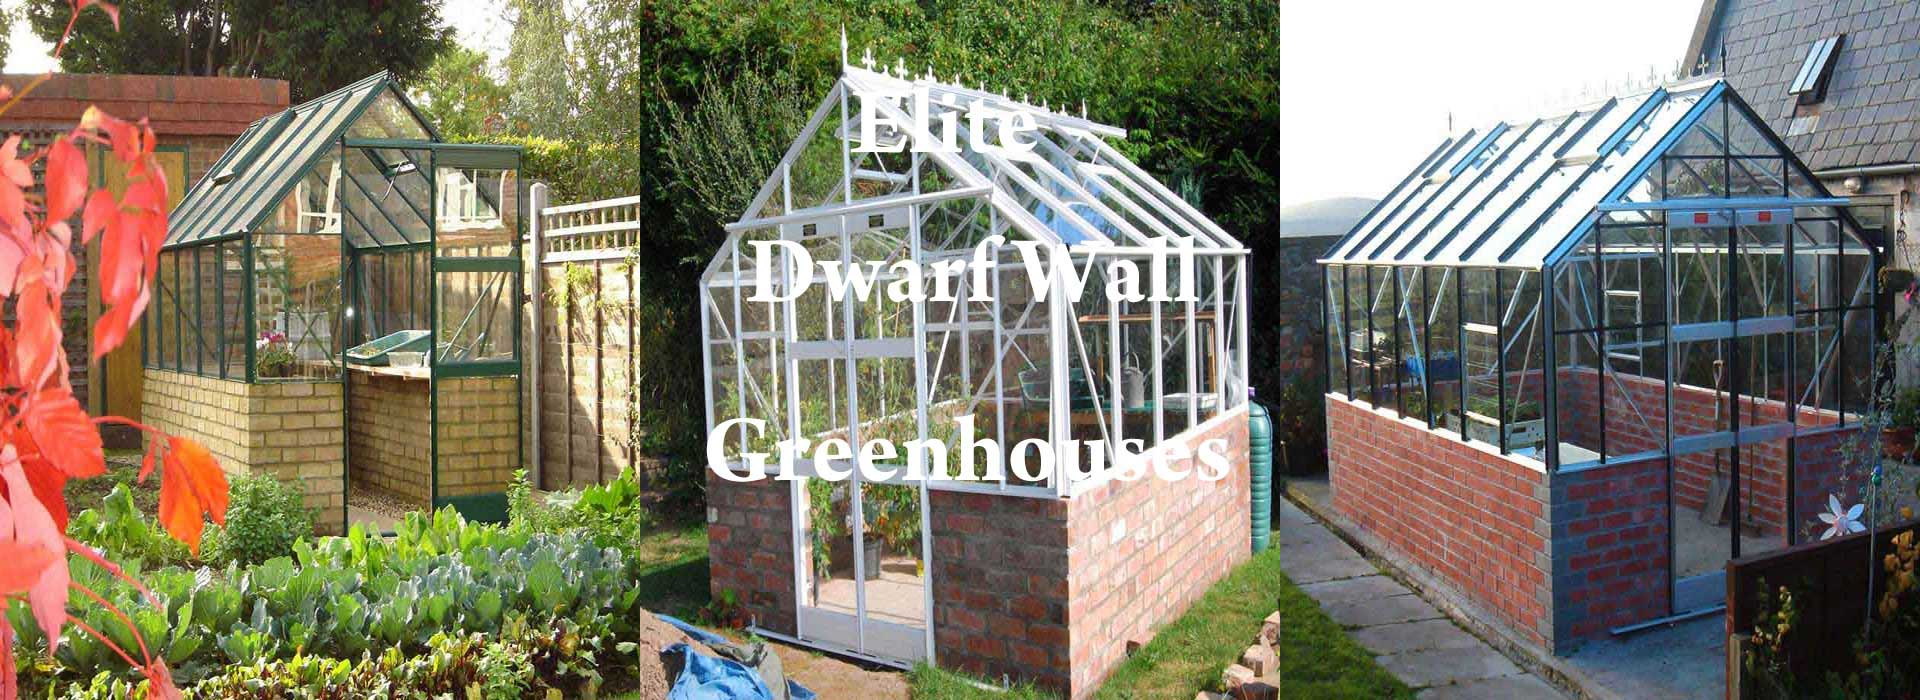 Elite Dwarf Wall Greenhouses